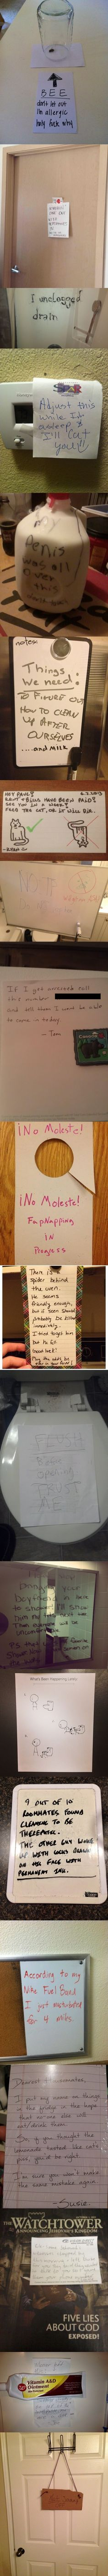 Notes from roommates  - funny pictures #funnypictures